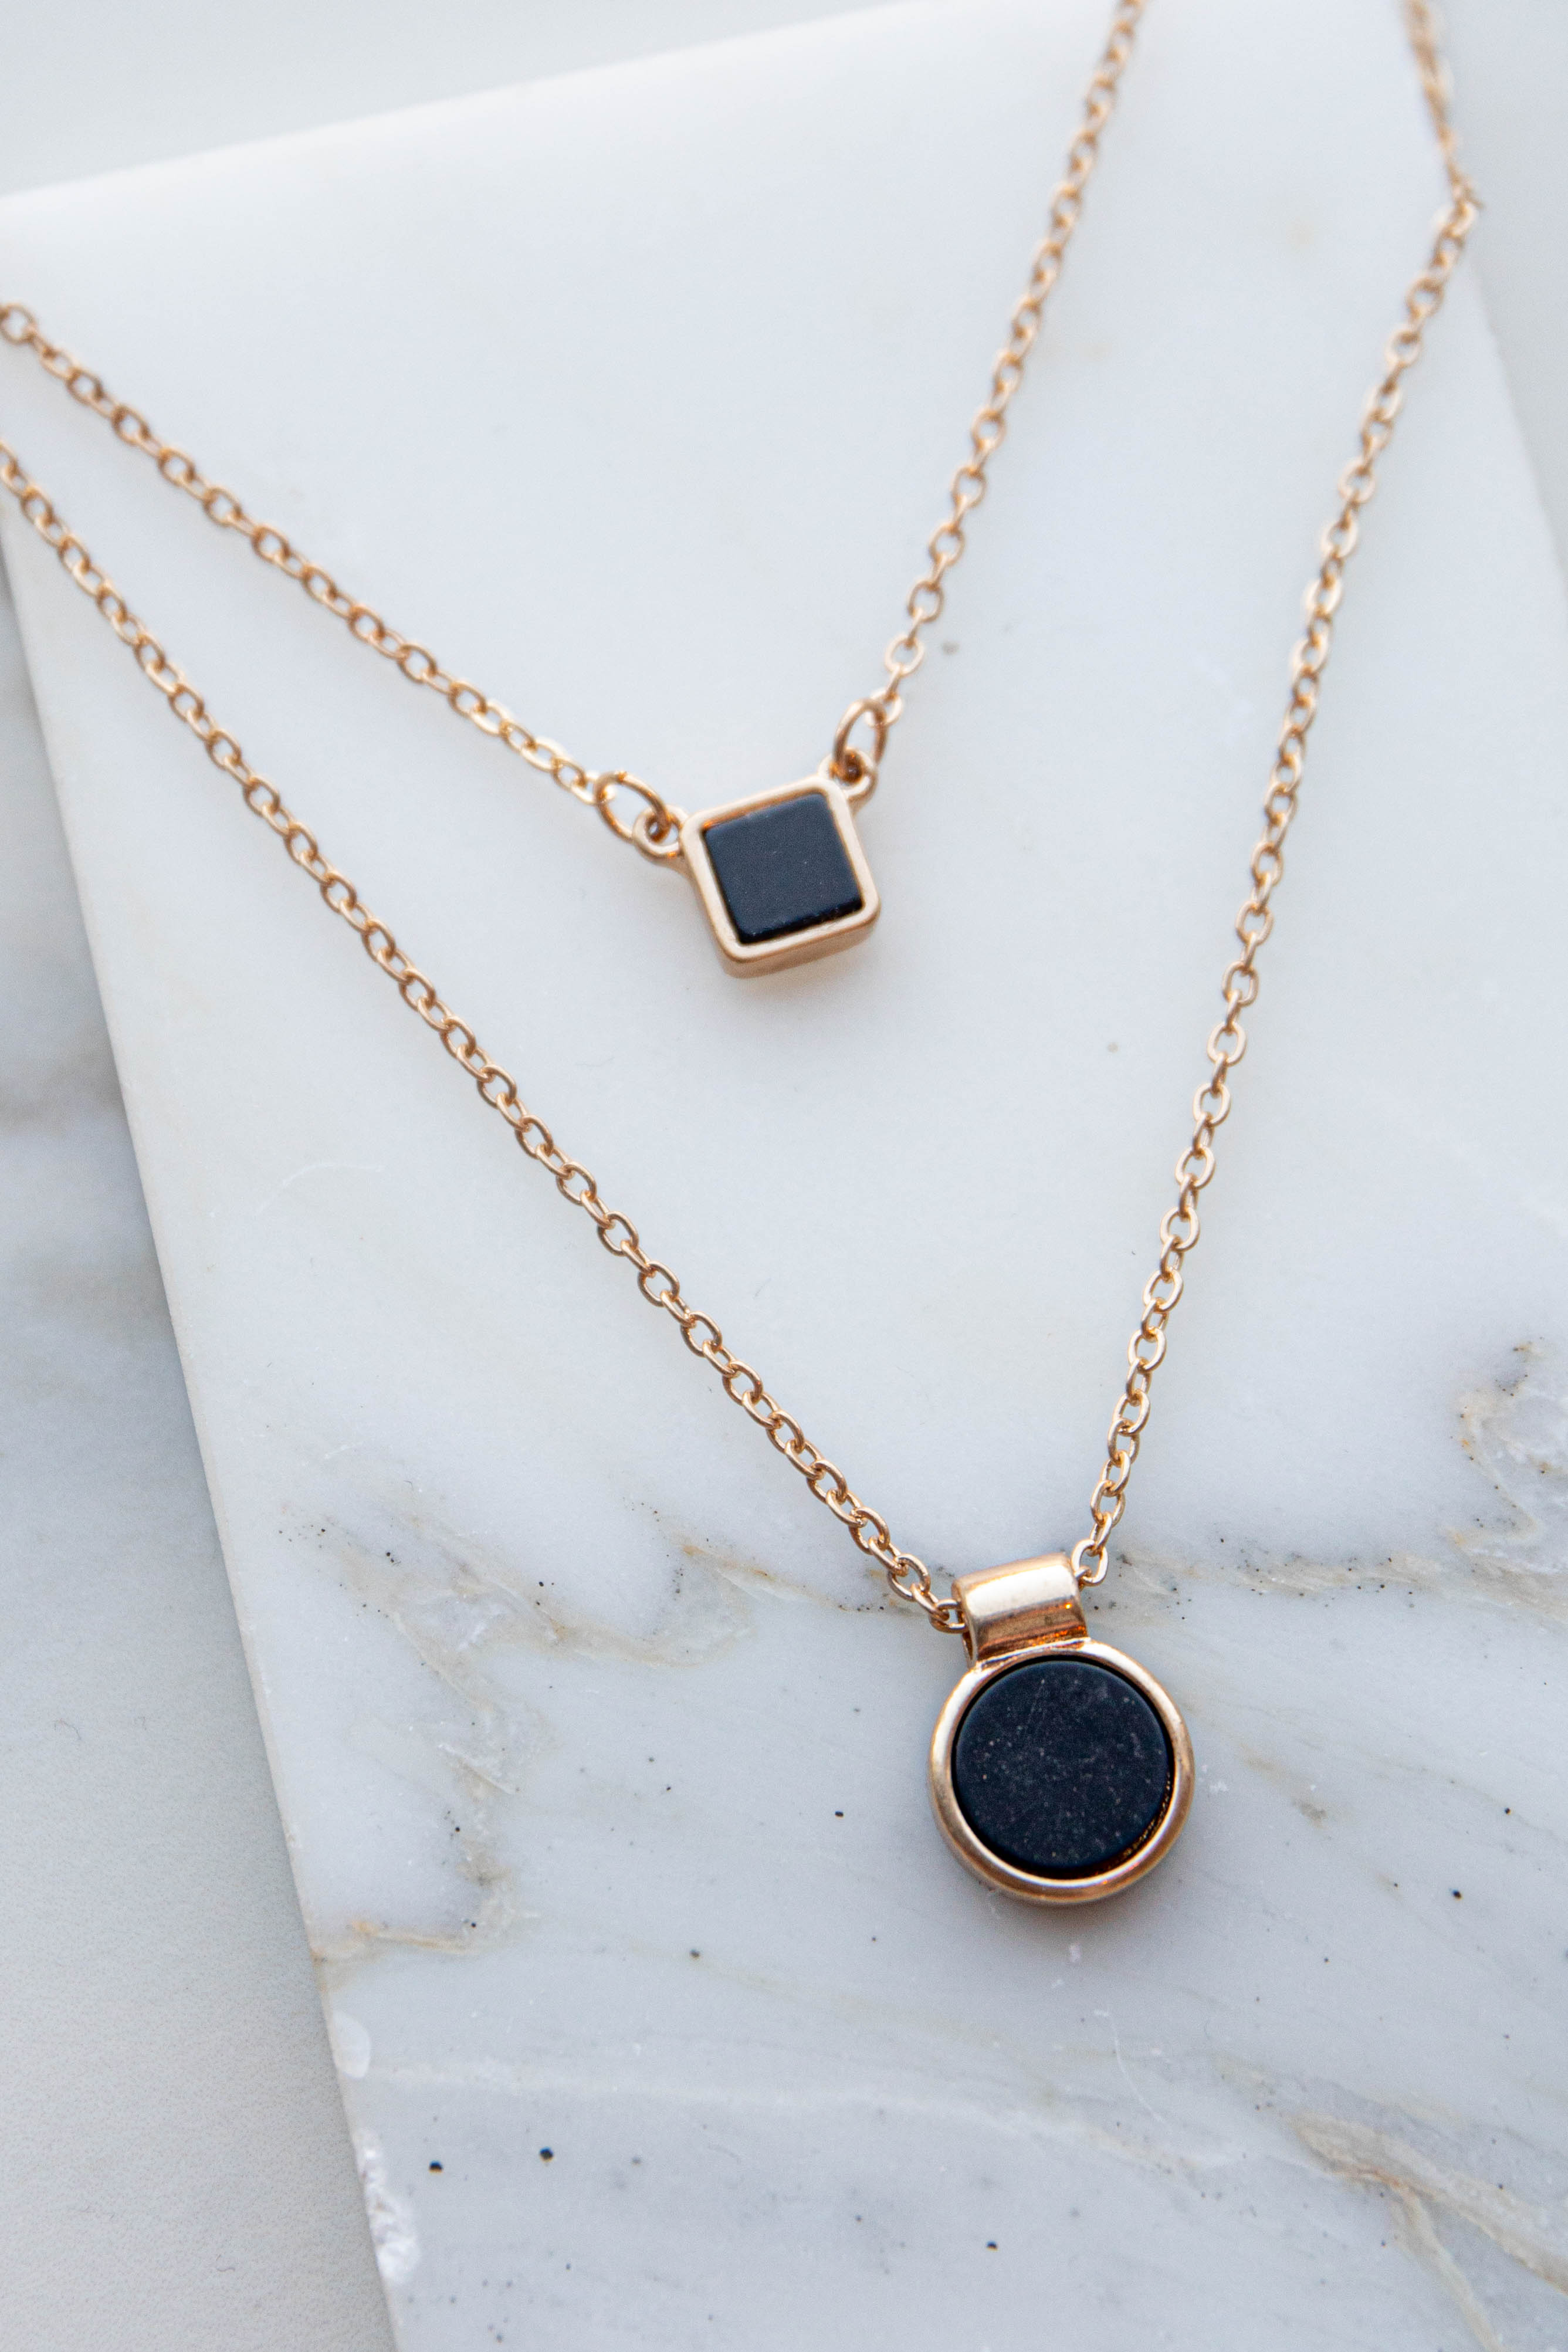 Black Charm Layered Gold Chain Necklace Set